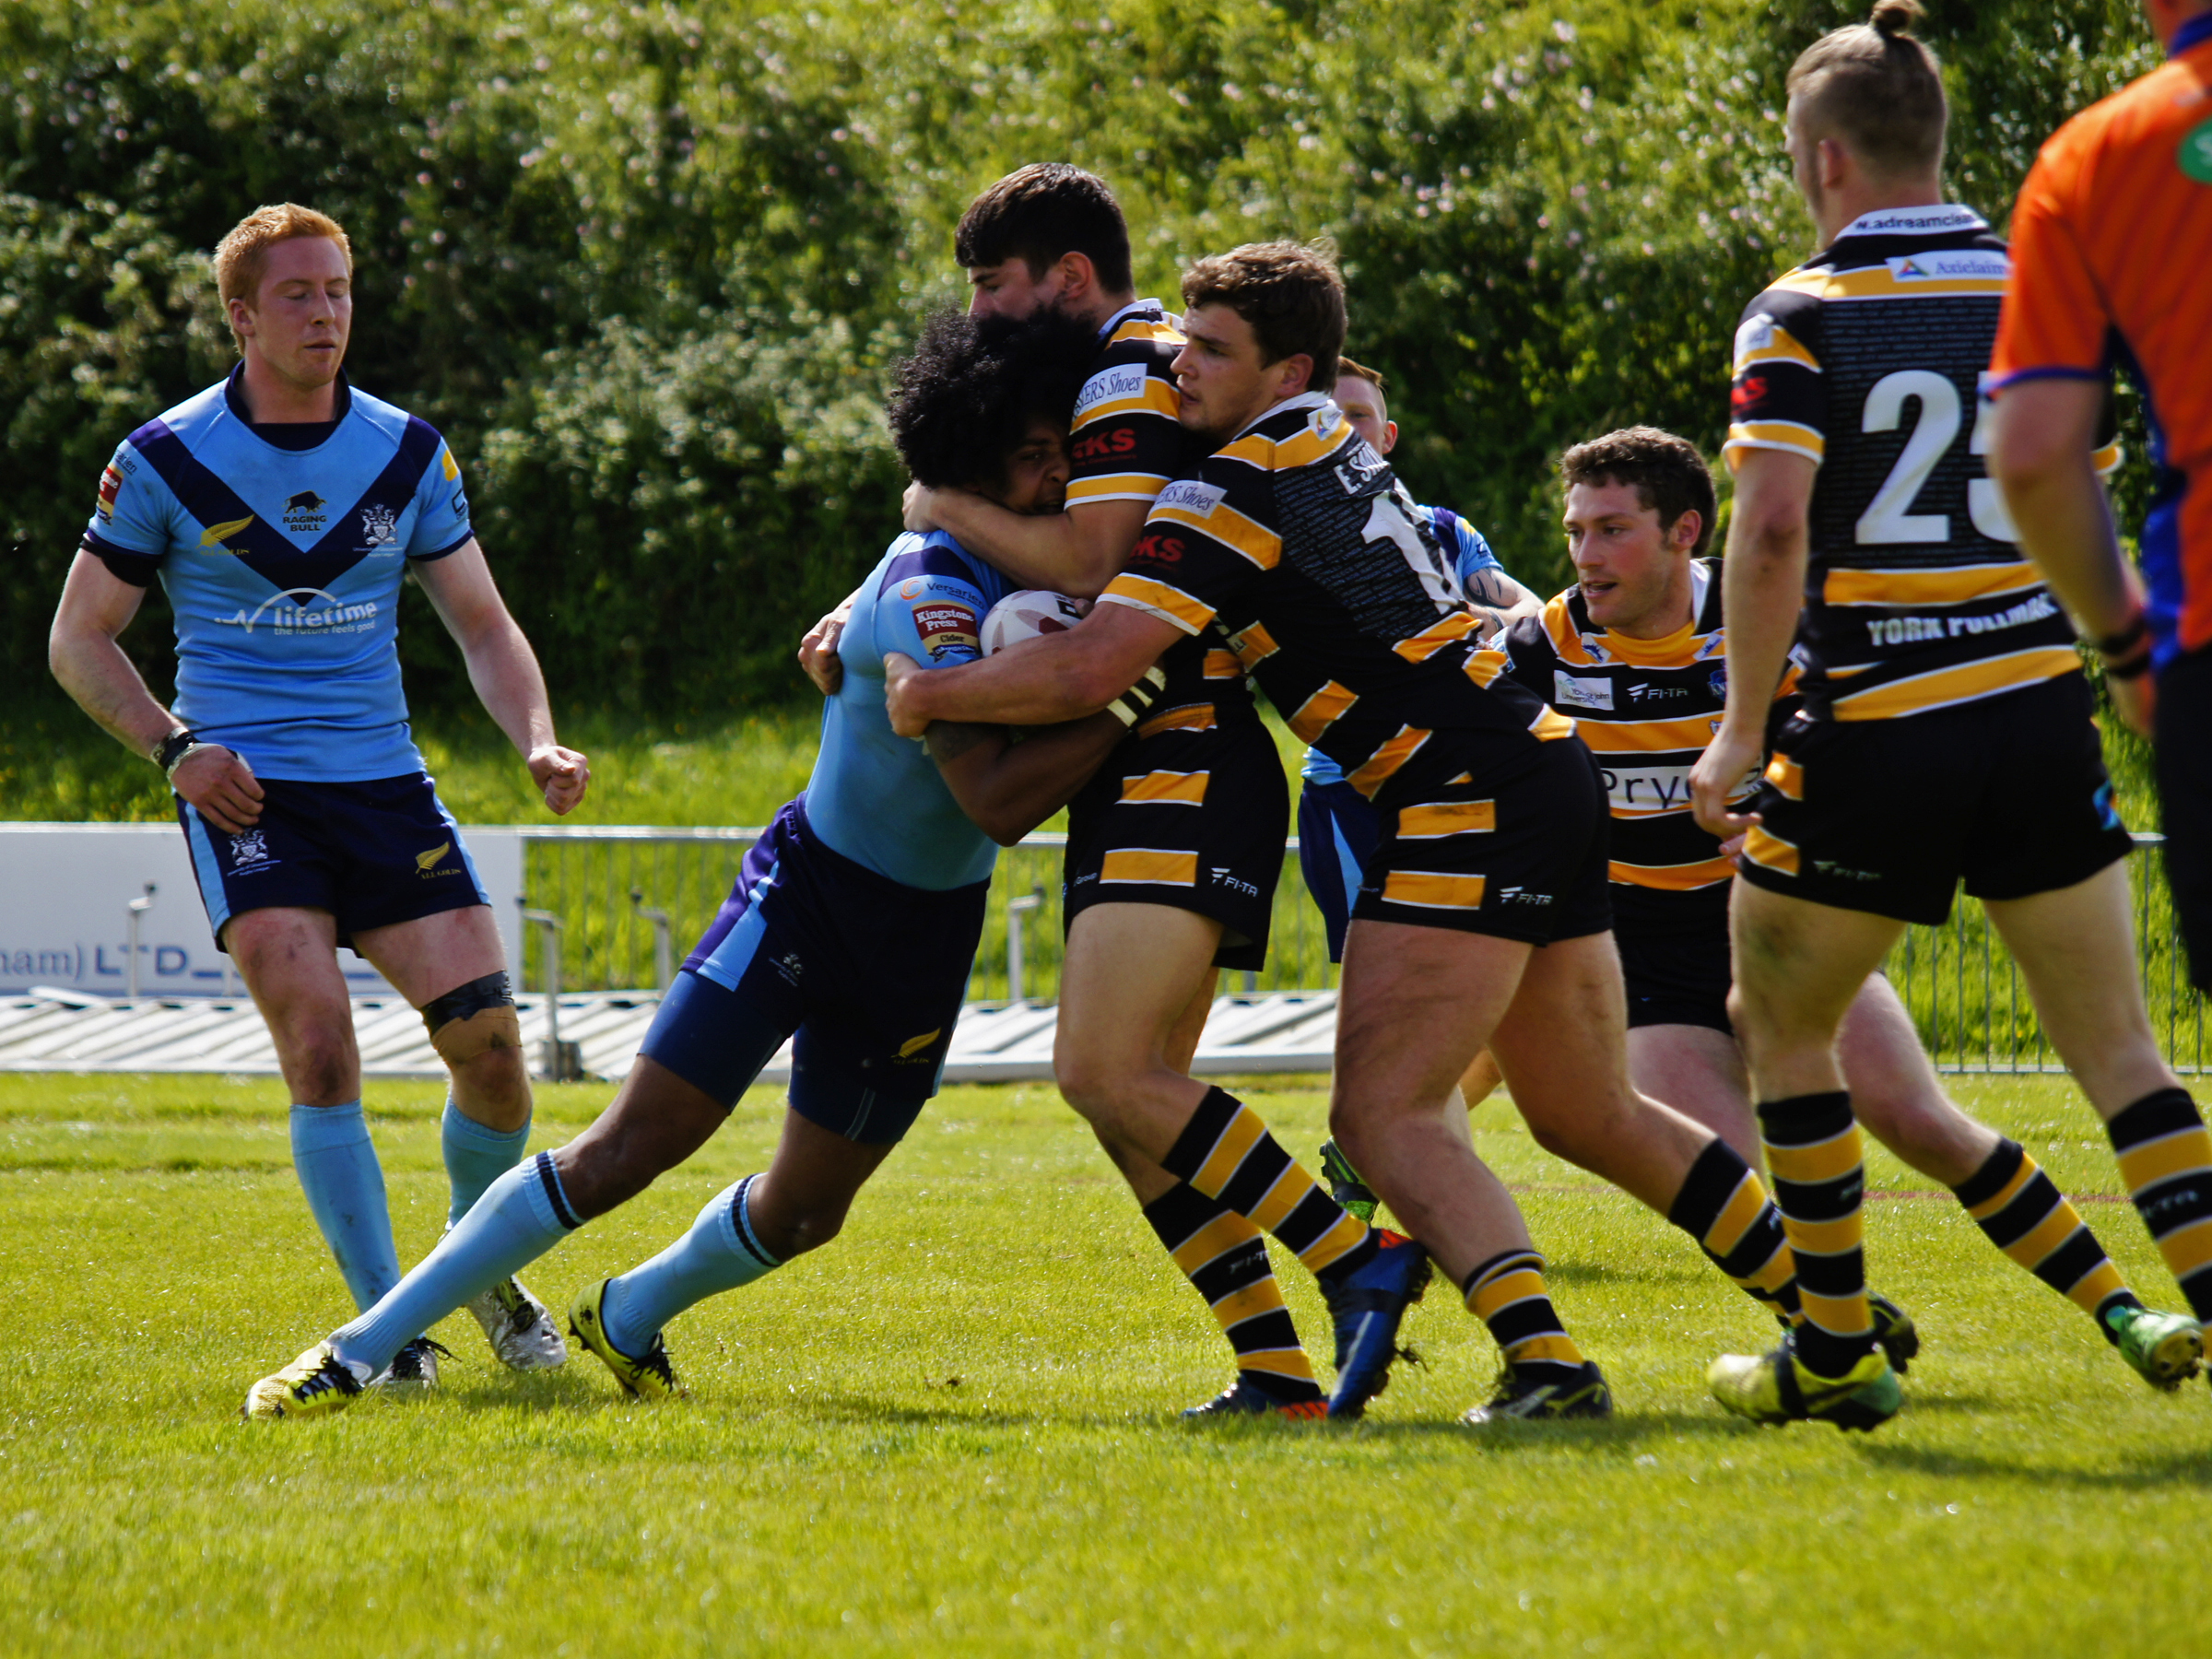 York City Knights tacklers repel a Gloucestershire All Golds attackPicture: Lewis Mitchell